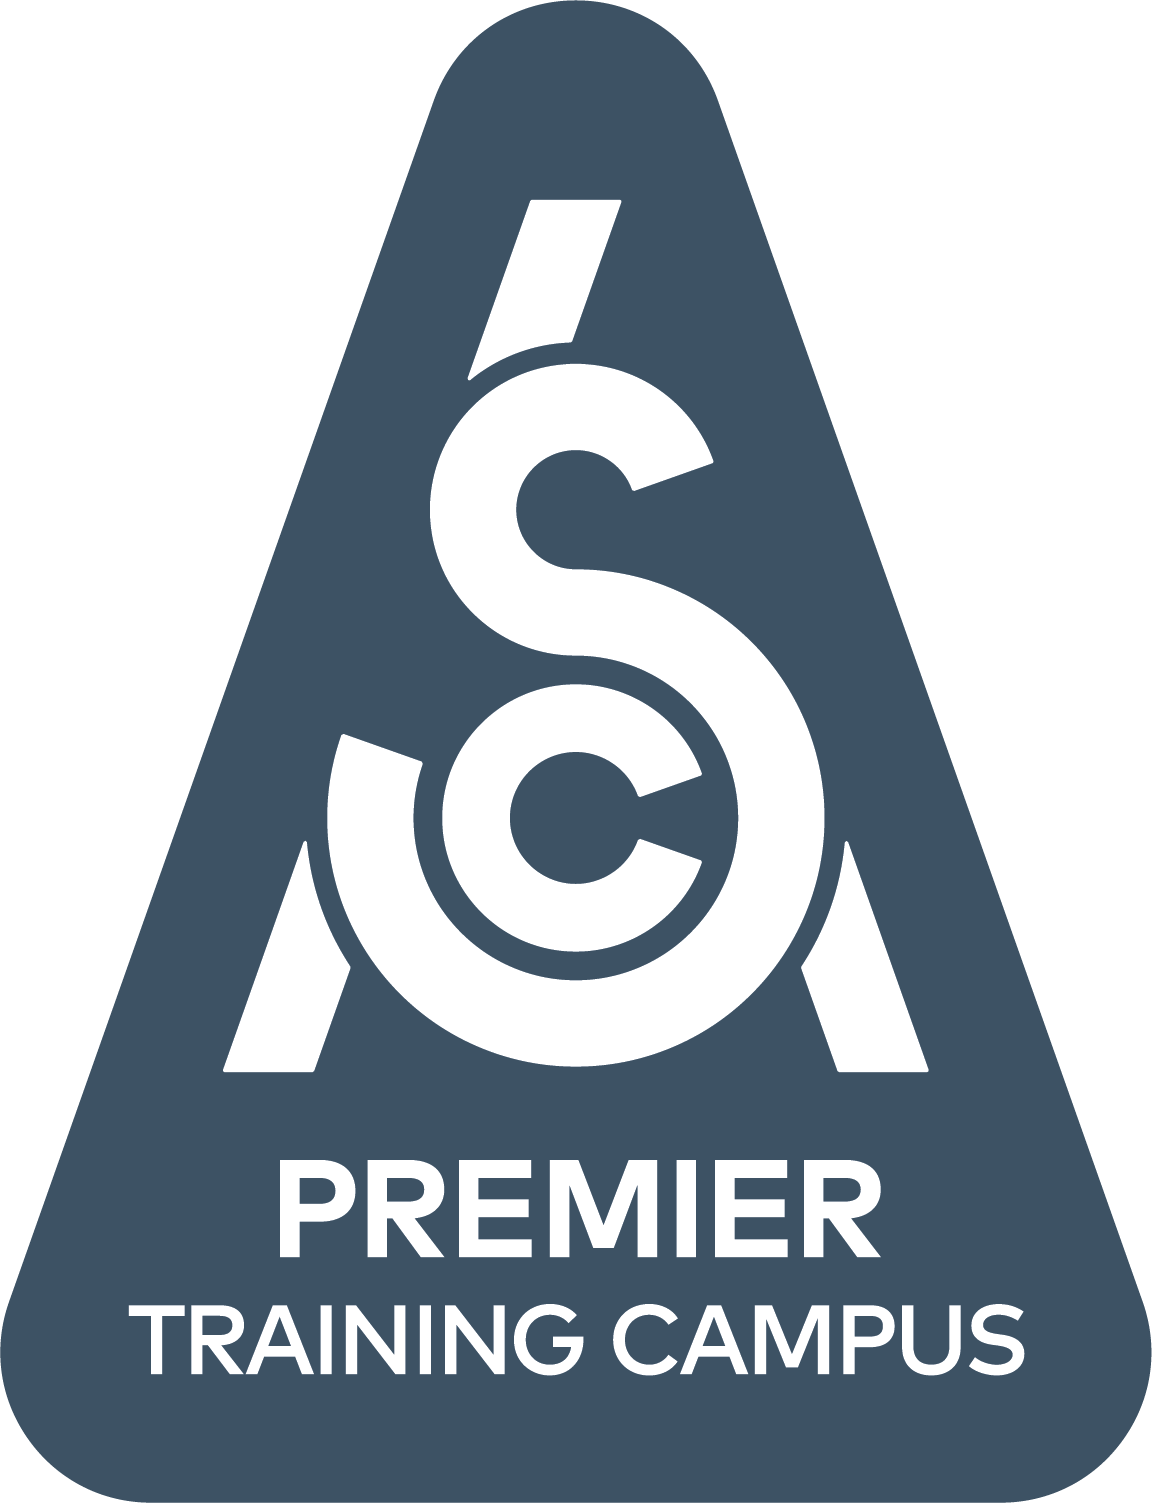 Premier Training Campus Mark - stone